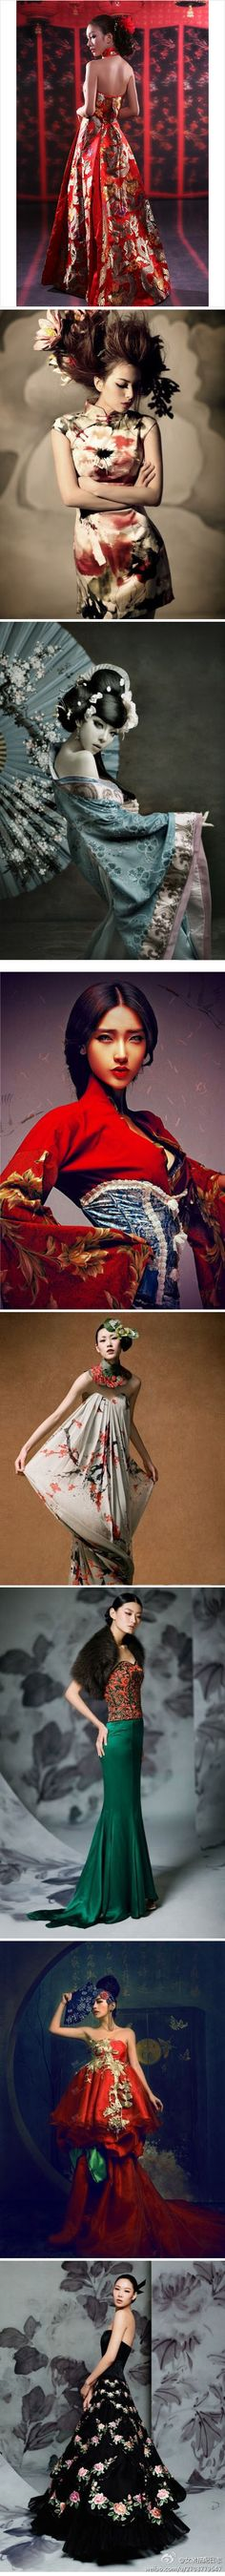 We are talking about a Chinese-style dress~~like it wiil share it Oriental Fashion, Asian Fashion, High Fashion, Chinese Fashion, Fashion Women, Fashion Vestidos, Fashion Dresses, Asian Style, Chinese Style